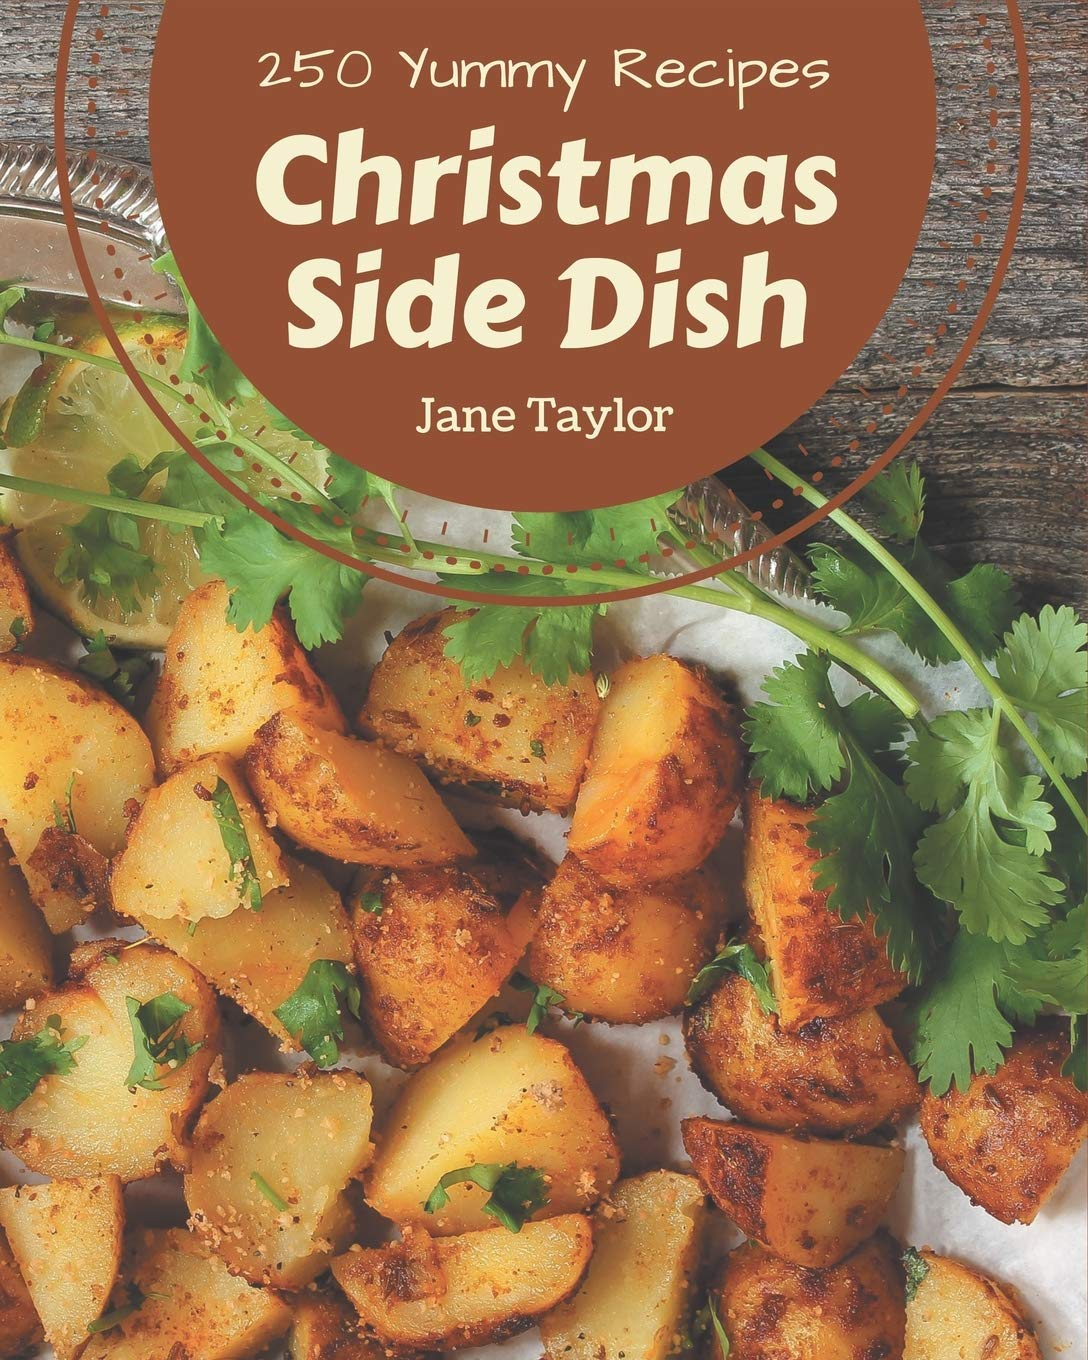 Christmas Side Dishes 2020 250 Yummy Christmas Side Dish Recipes: Start a New Cooking Chapter